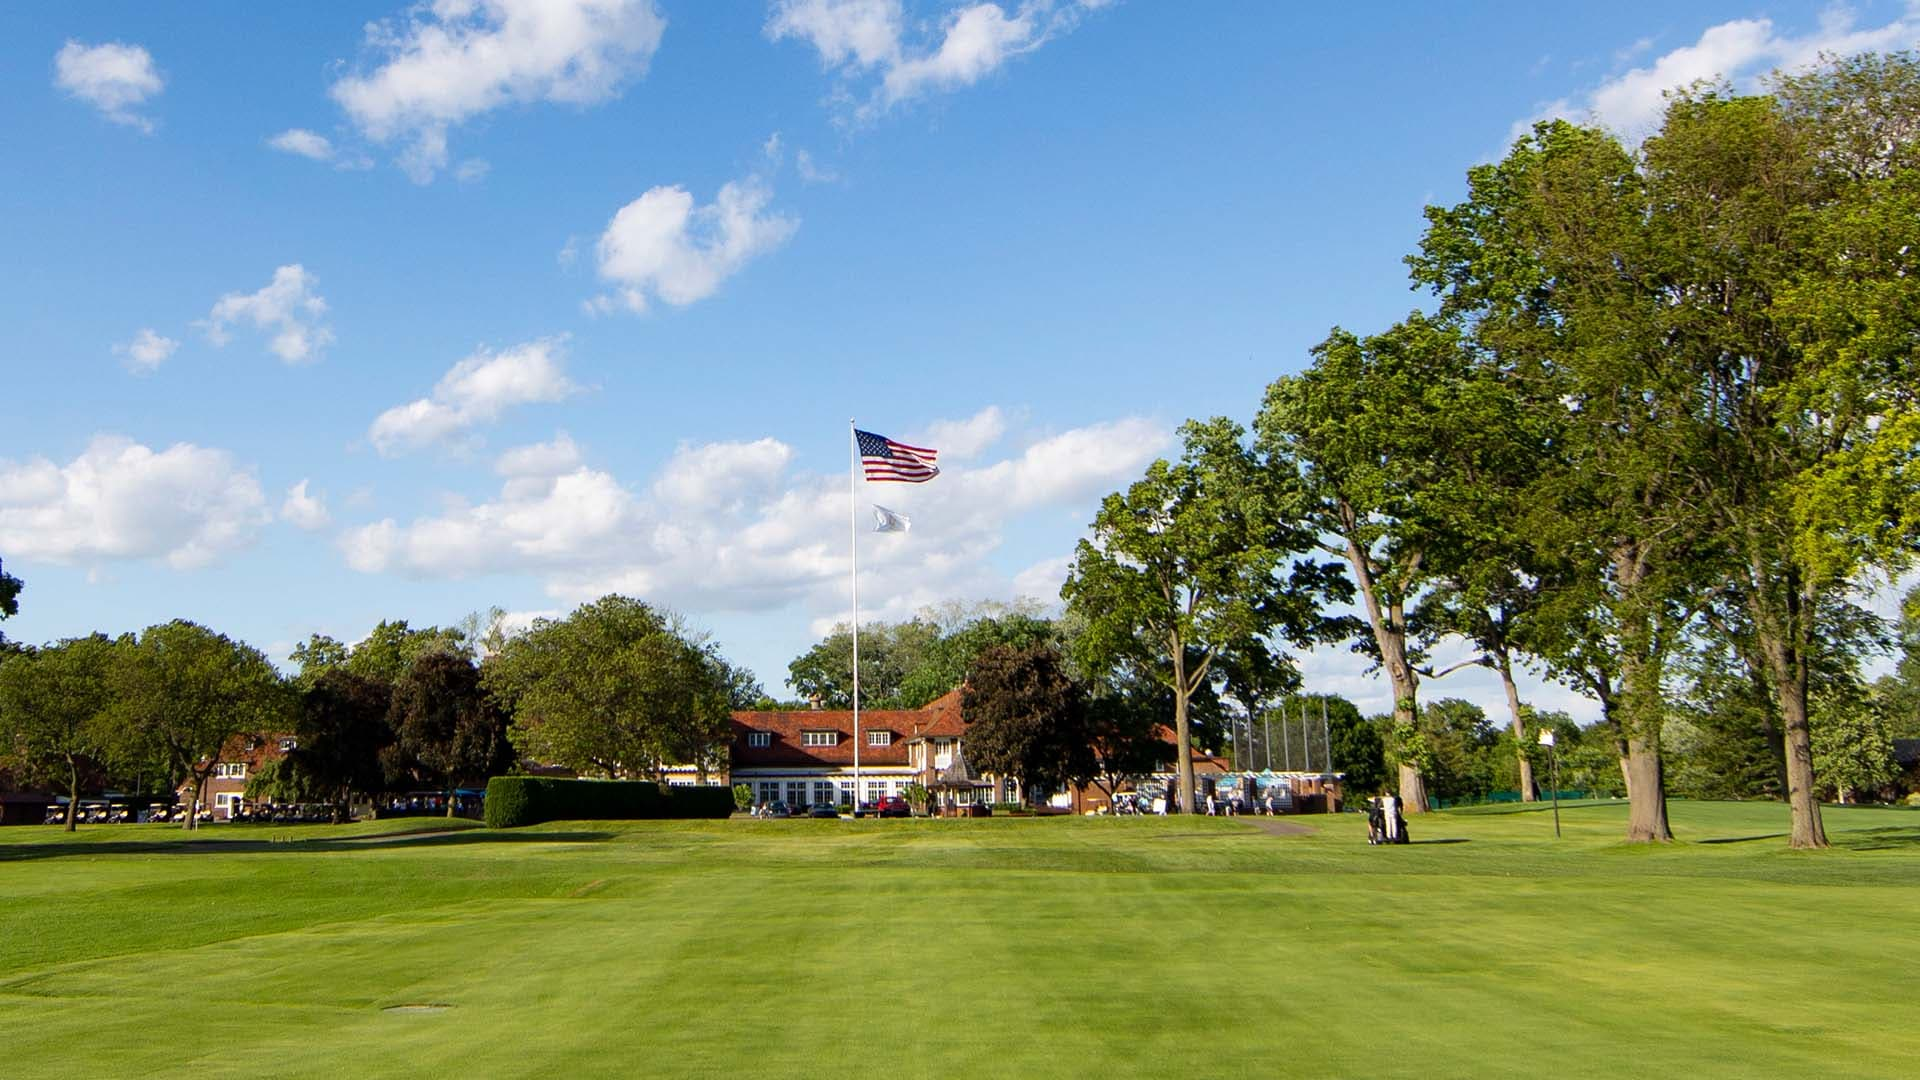 Men's golf tour comes to Detroit this weekend